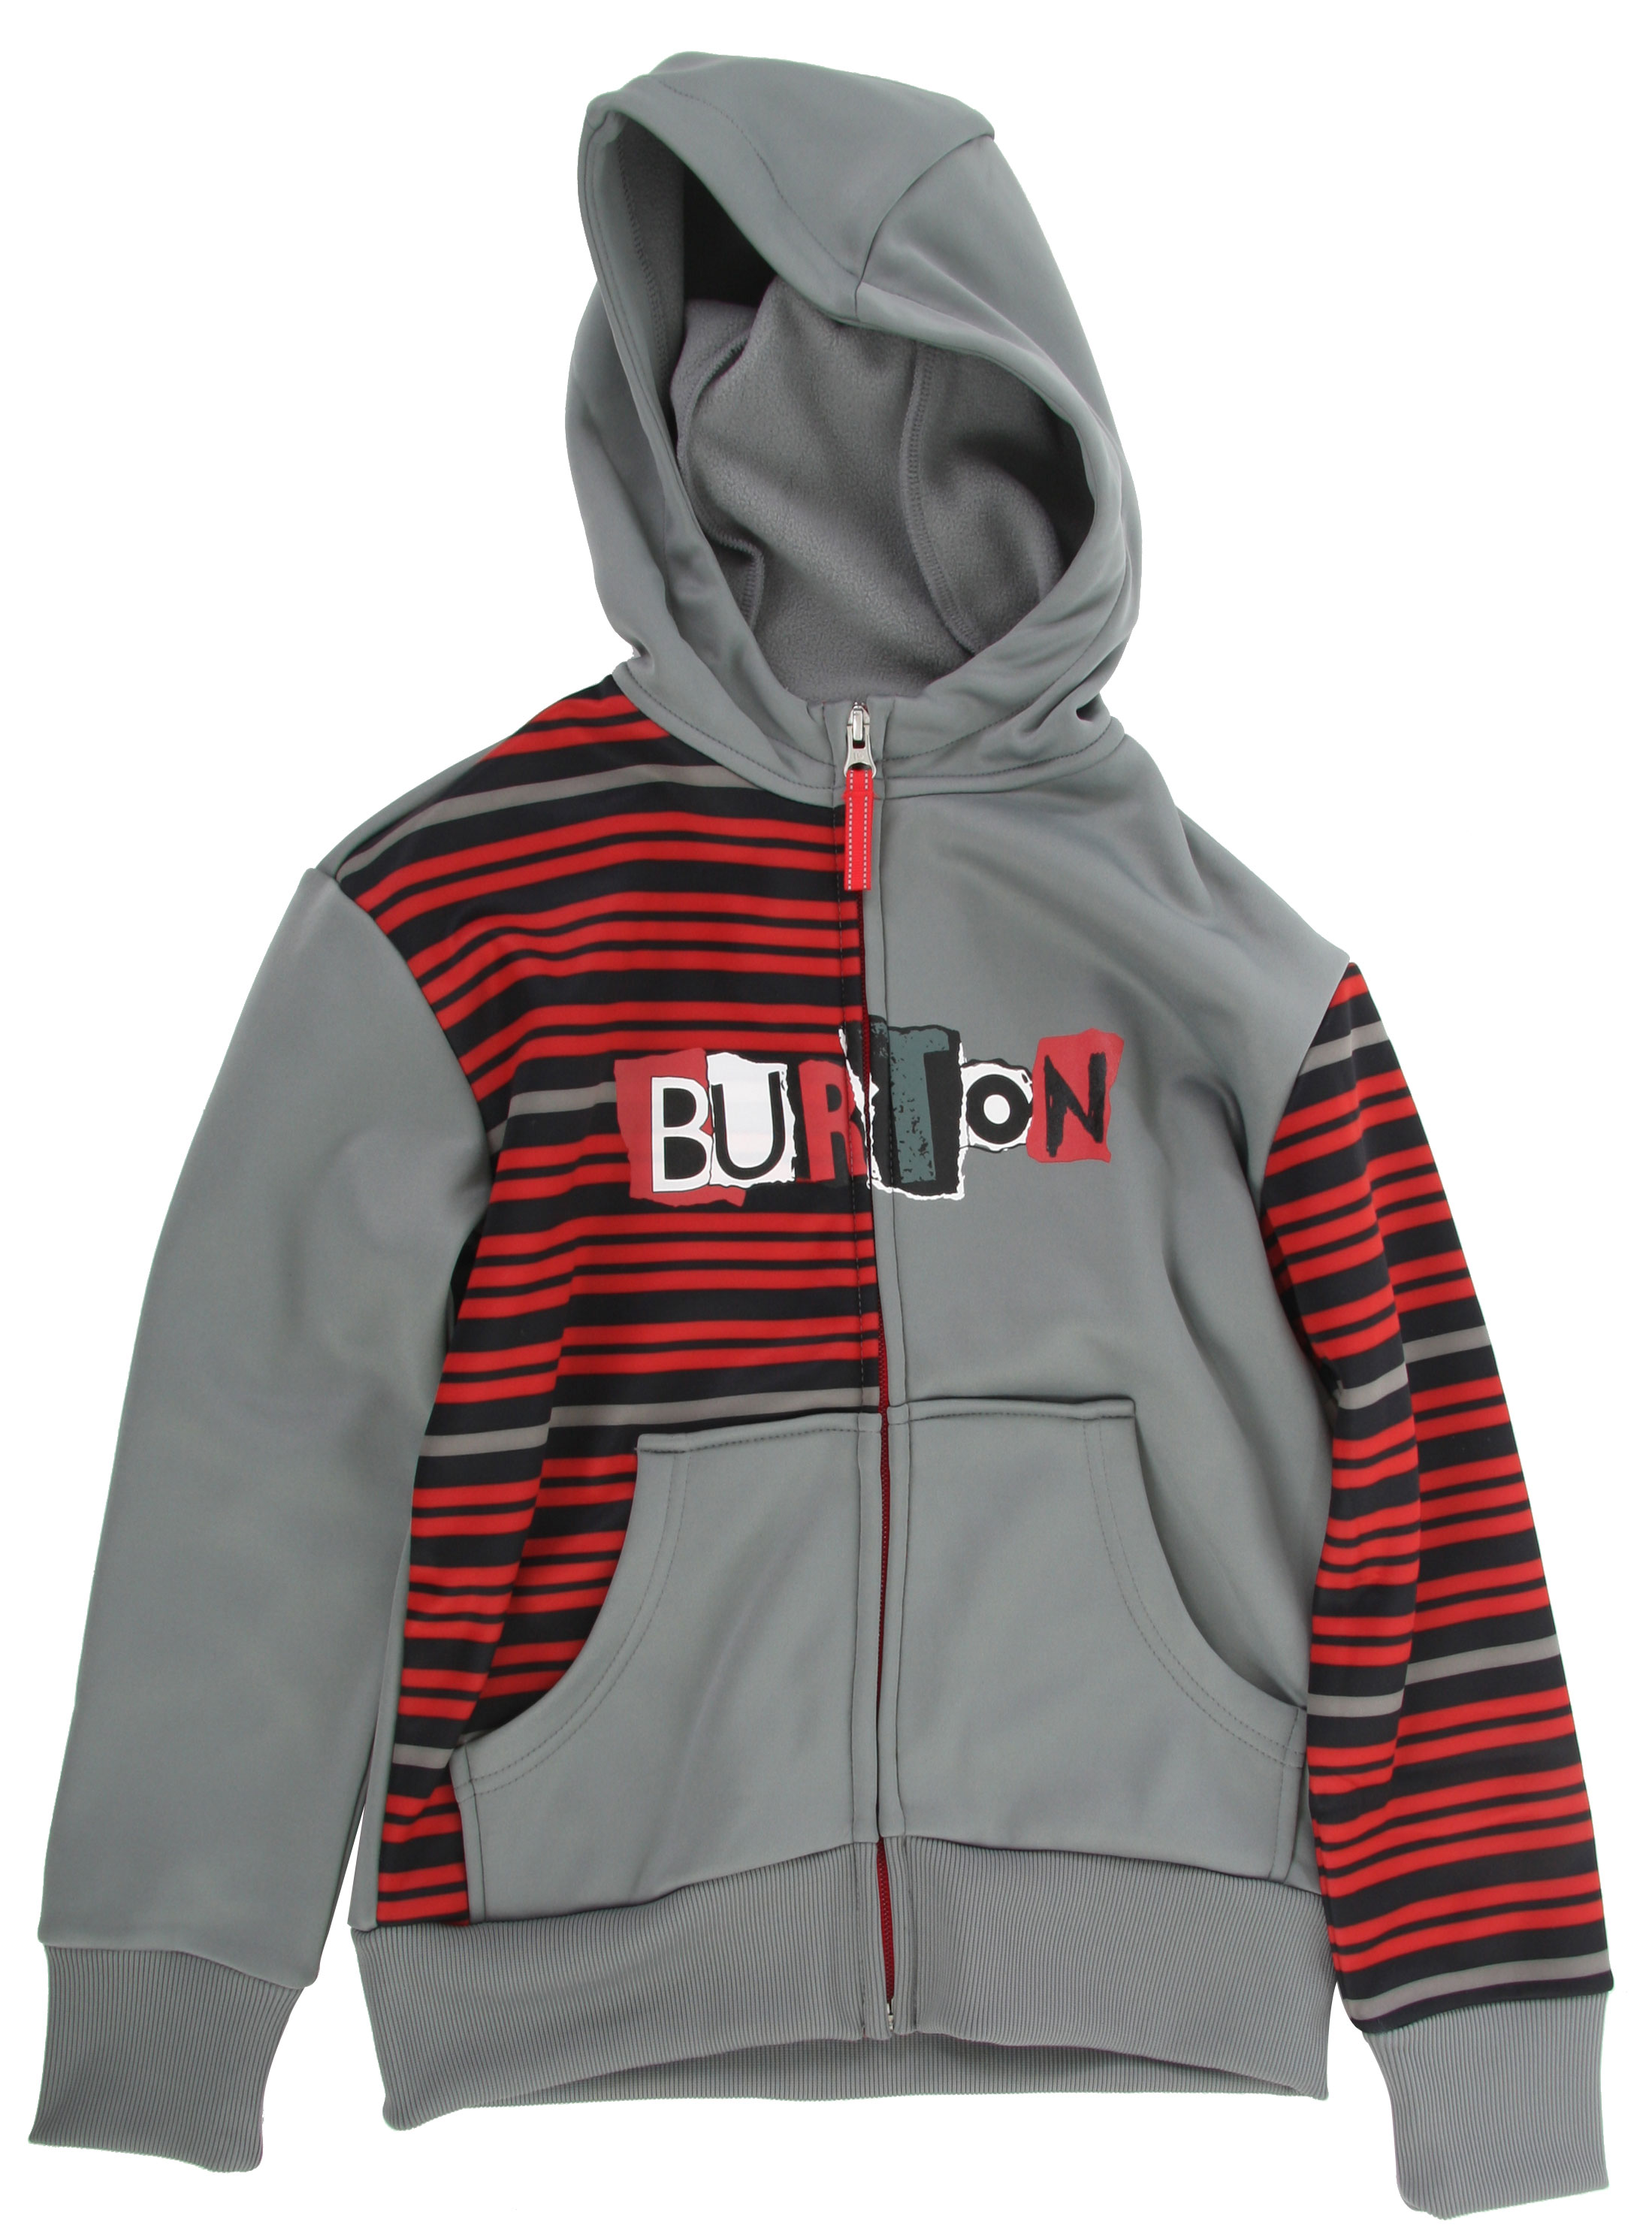 Snowboard Quick-drying warmth and weather protection-the exact opposite of what you get when wearing cotton.Key Features of the Burton Bonded Fleece: DRYRIDE Thermex Bonded, Hard-Surface Fleece Hood with Drawstring Closure Kangaroo Handwarmer Pockets Ribbed Cuffs and Hem - $41.95